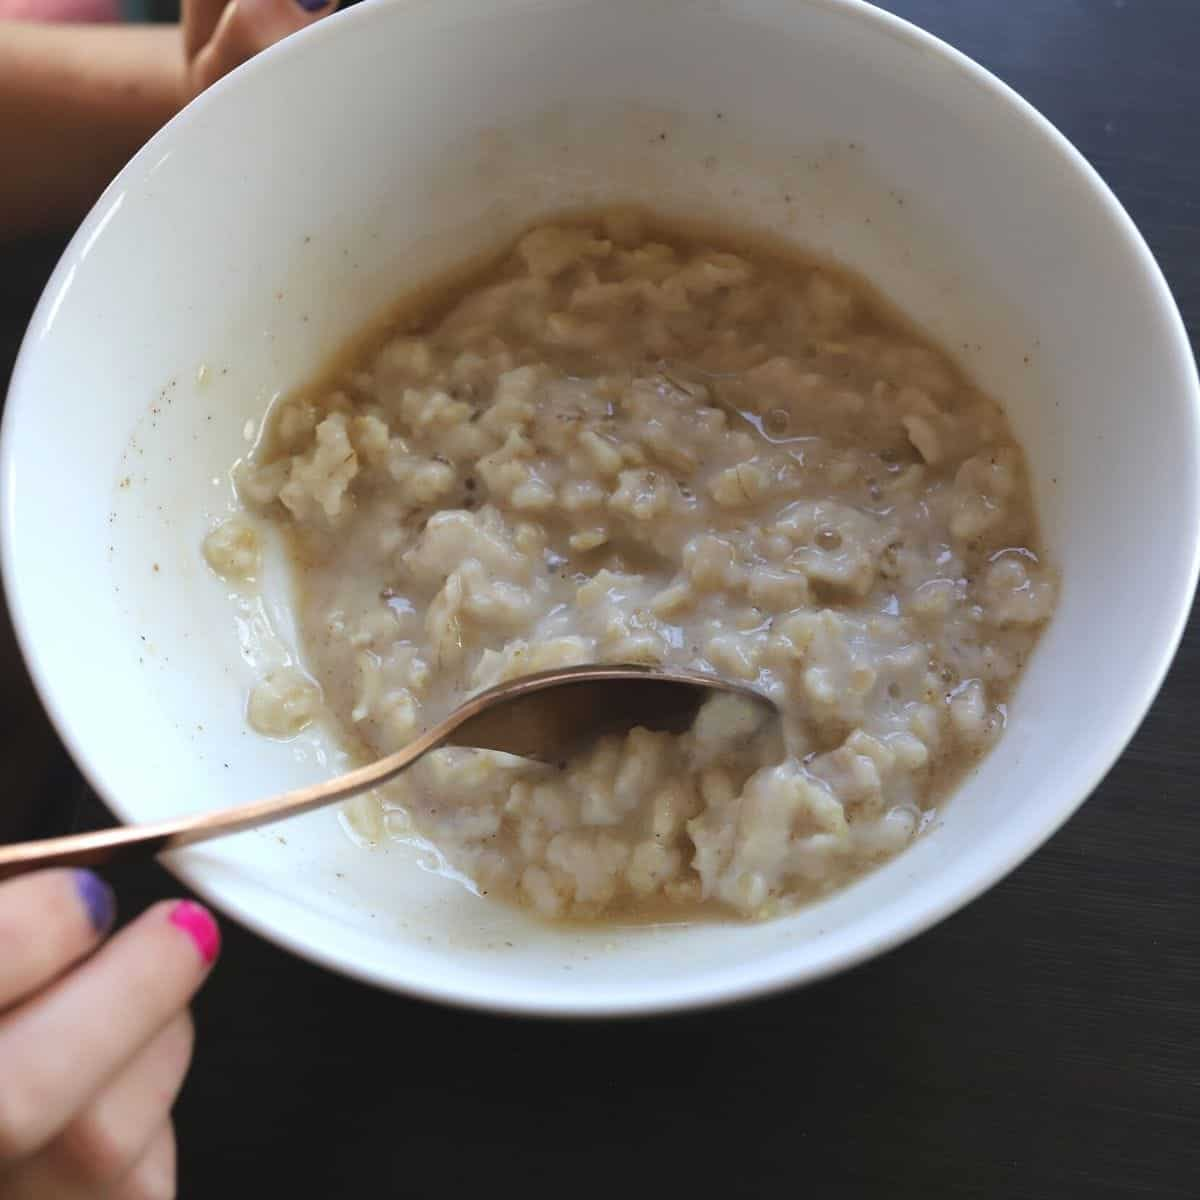 stovetop oatmeal with quaker oats in a bowl